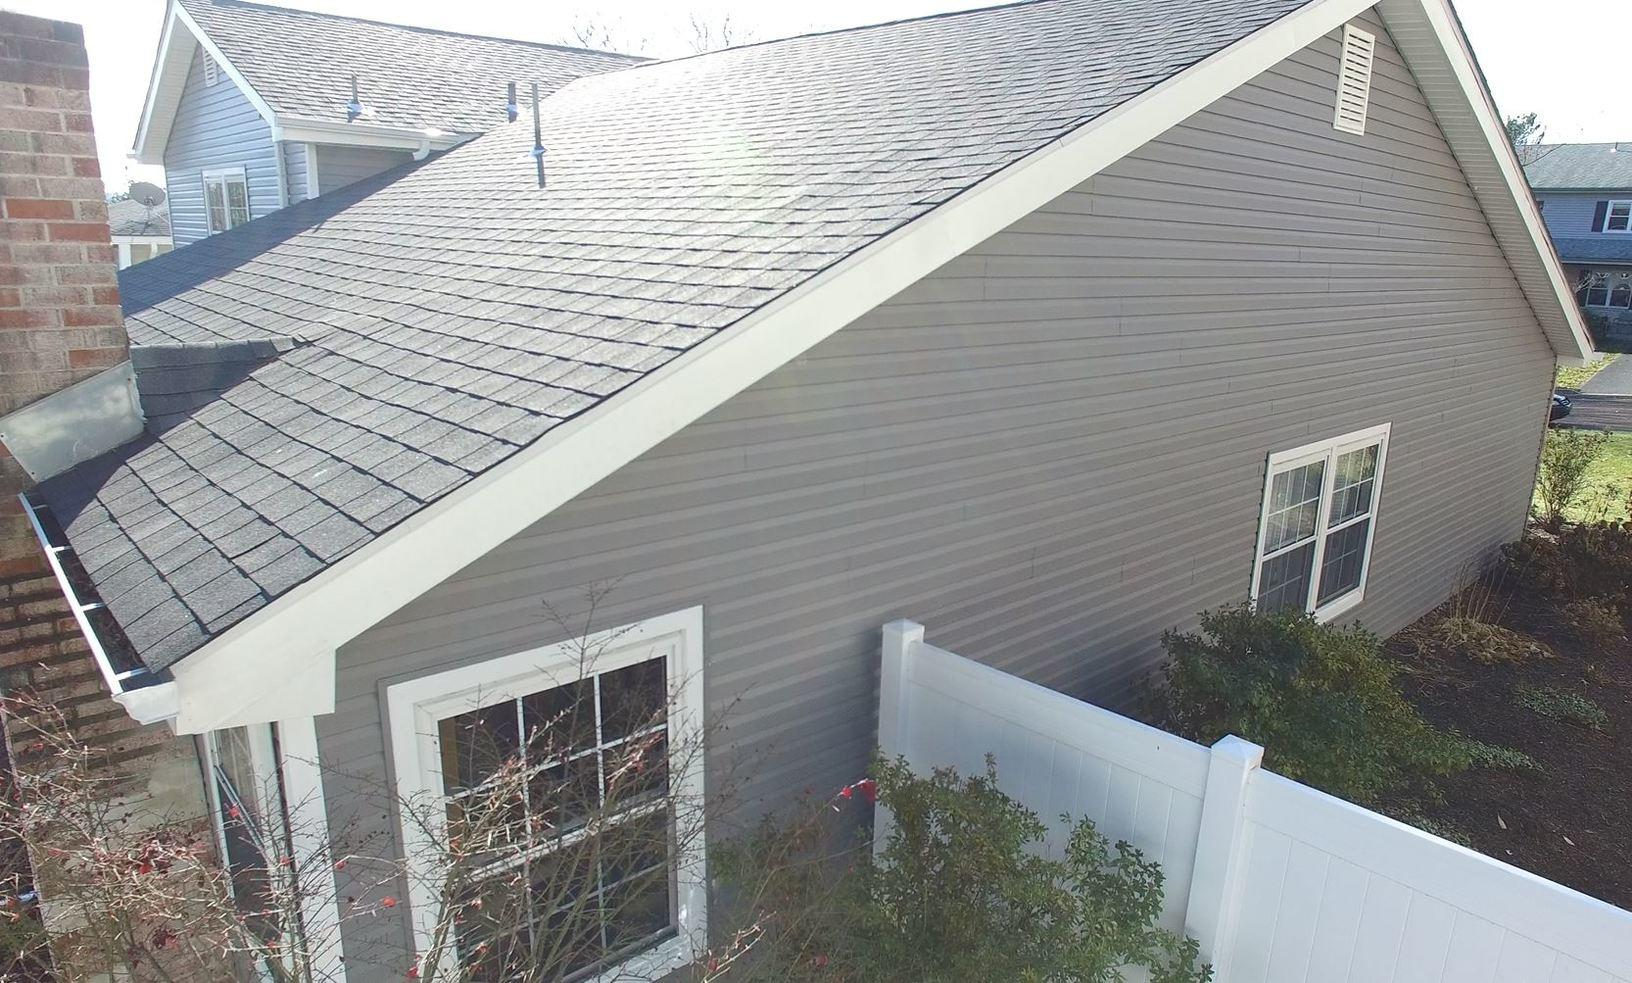 Vinyl Siding, Capping, Architectural Shingles, and More Provided By Pinnacle Exteriors